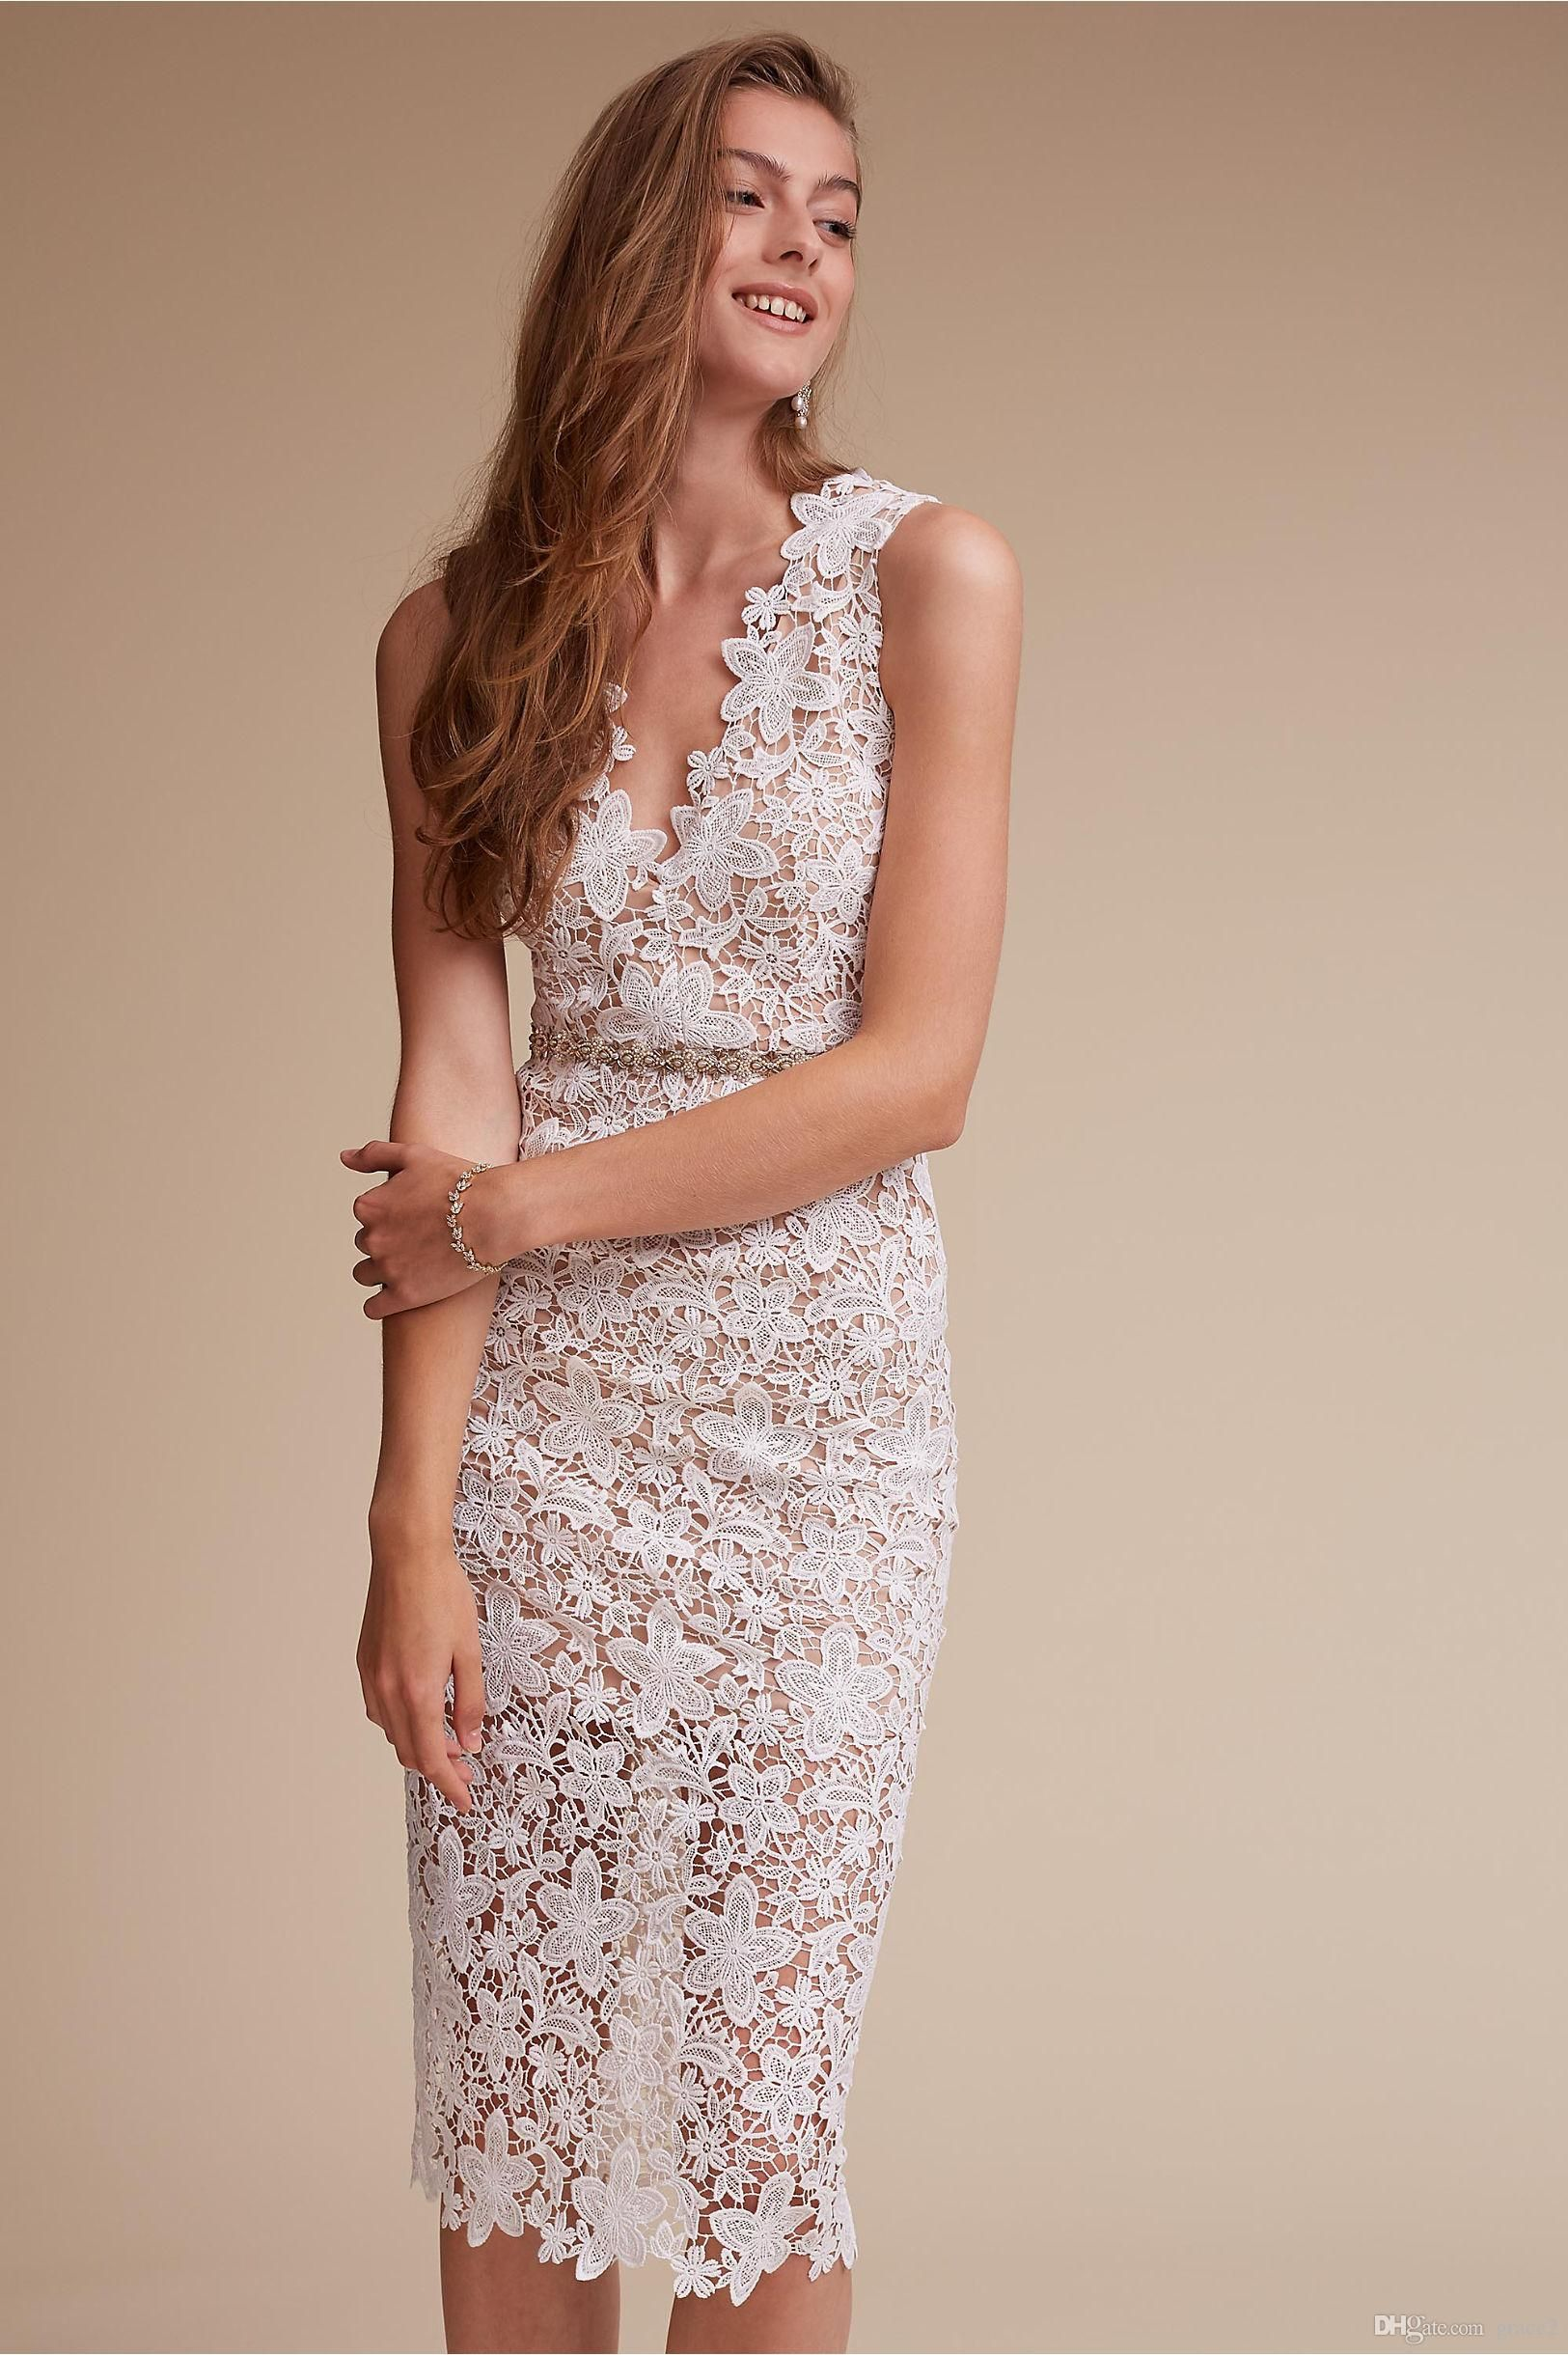 Beach dresses for weddings  Lace Short Wedding Dresses  Bhldn with V Neck and Beaded Sash